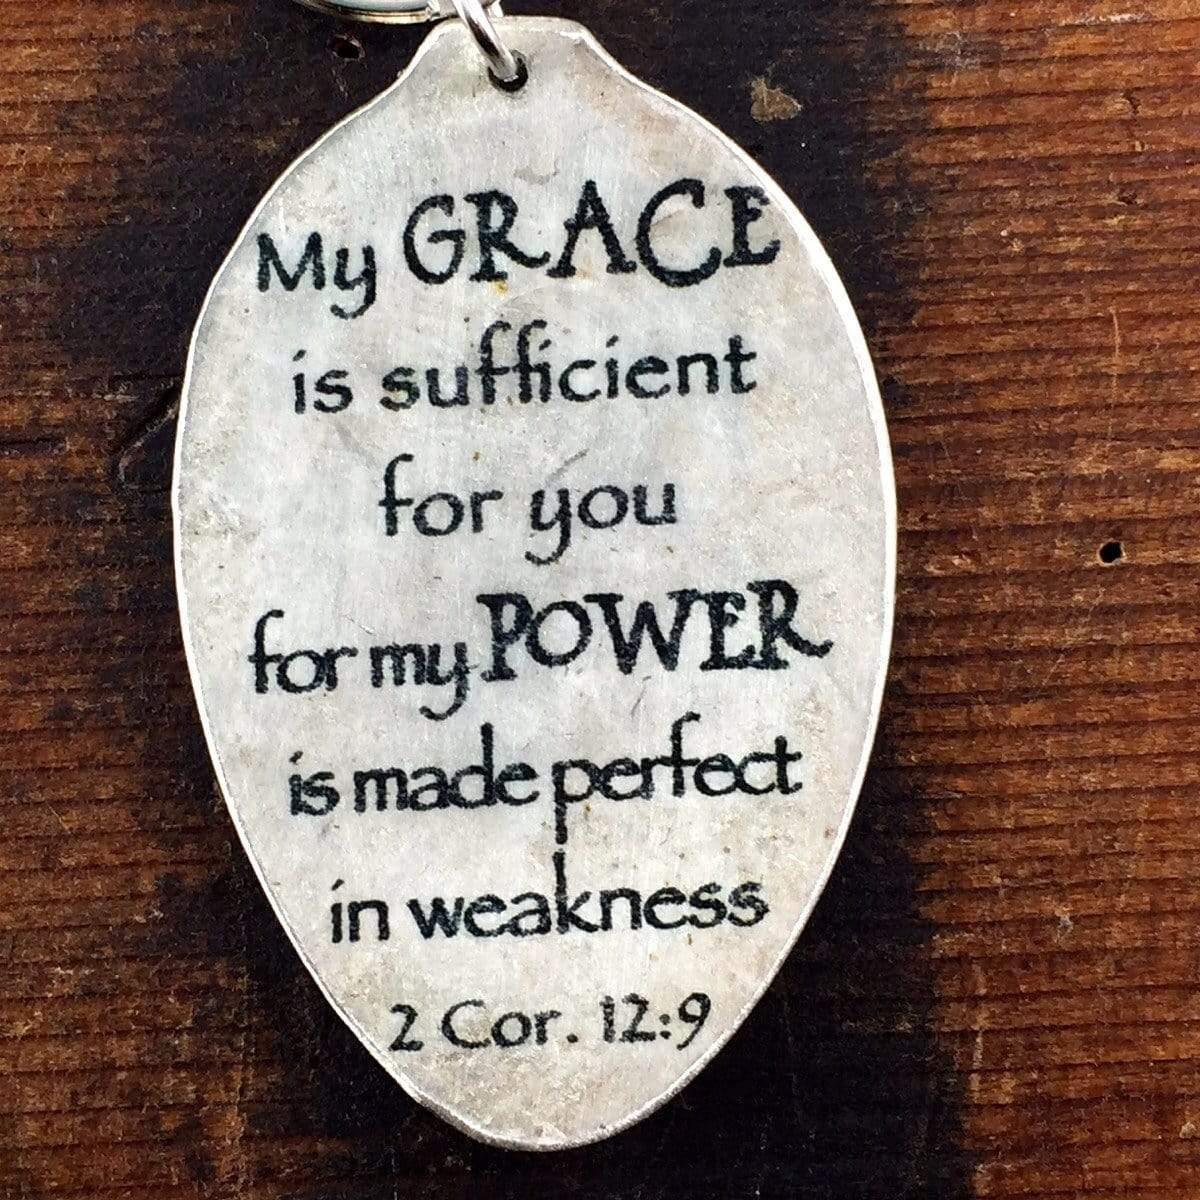 scripture keychain 2 cor. 12:9 by kyleemae designs